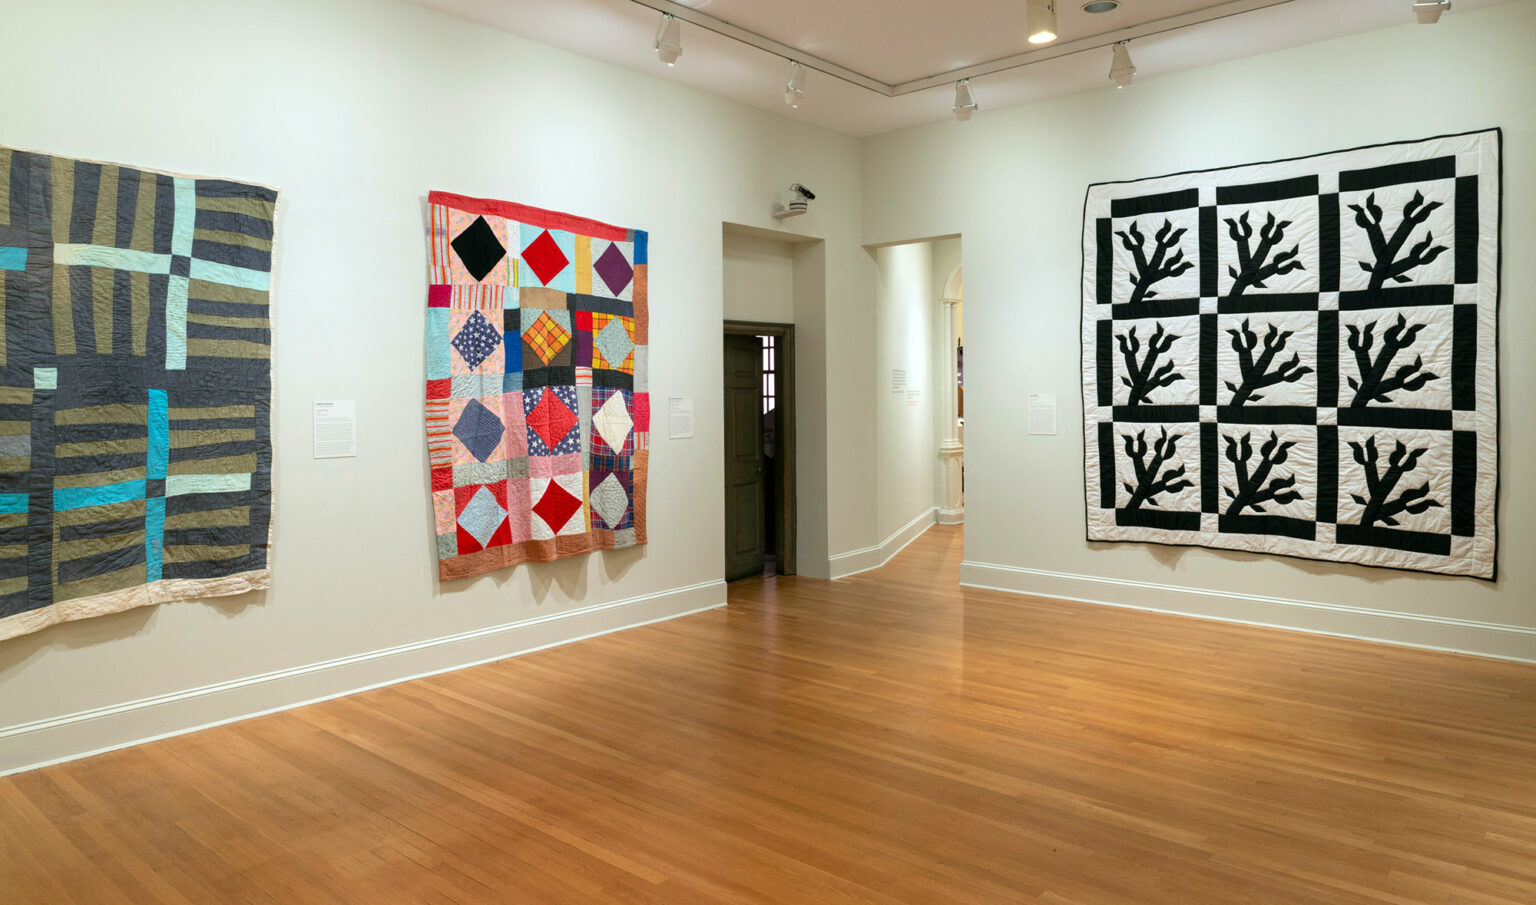 Installation view, She Knew Where She Was Going: Gee's Bend Quilts and Civil Rights. Photo by Mitro Hood.